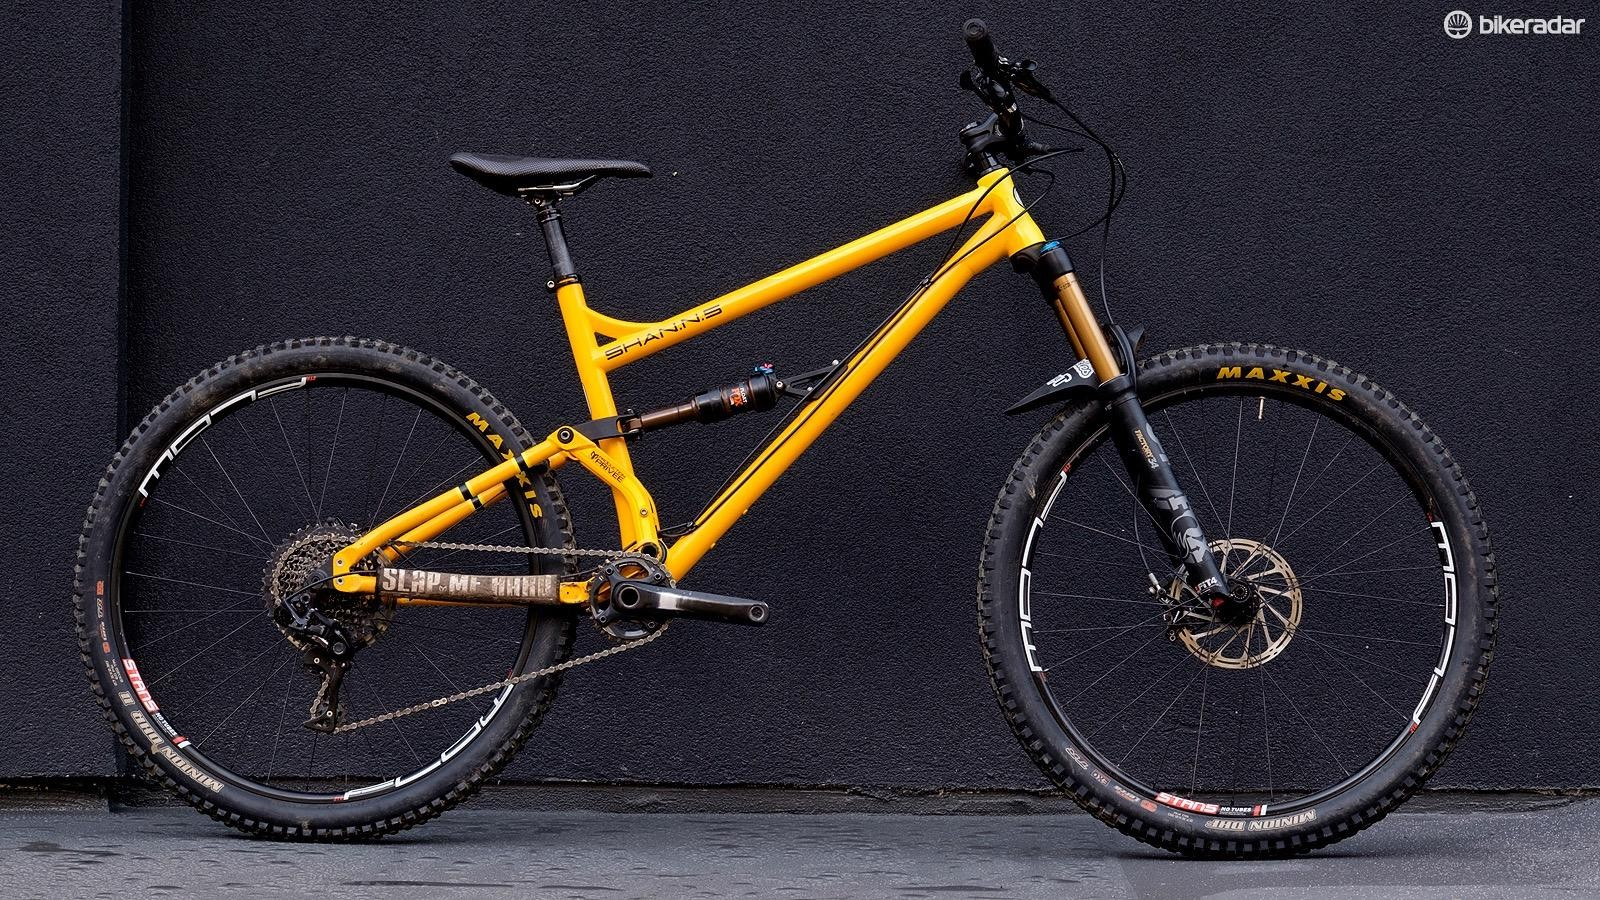 The Shan No 5 is a proper enduro bike made from steel